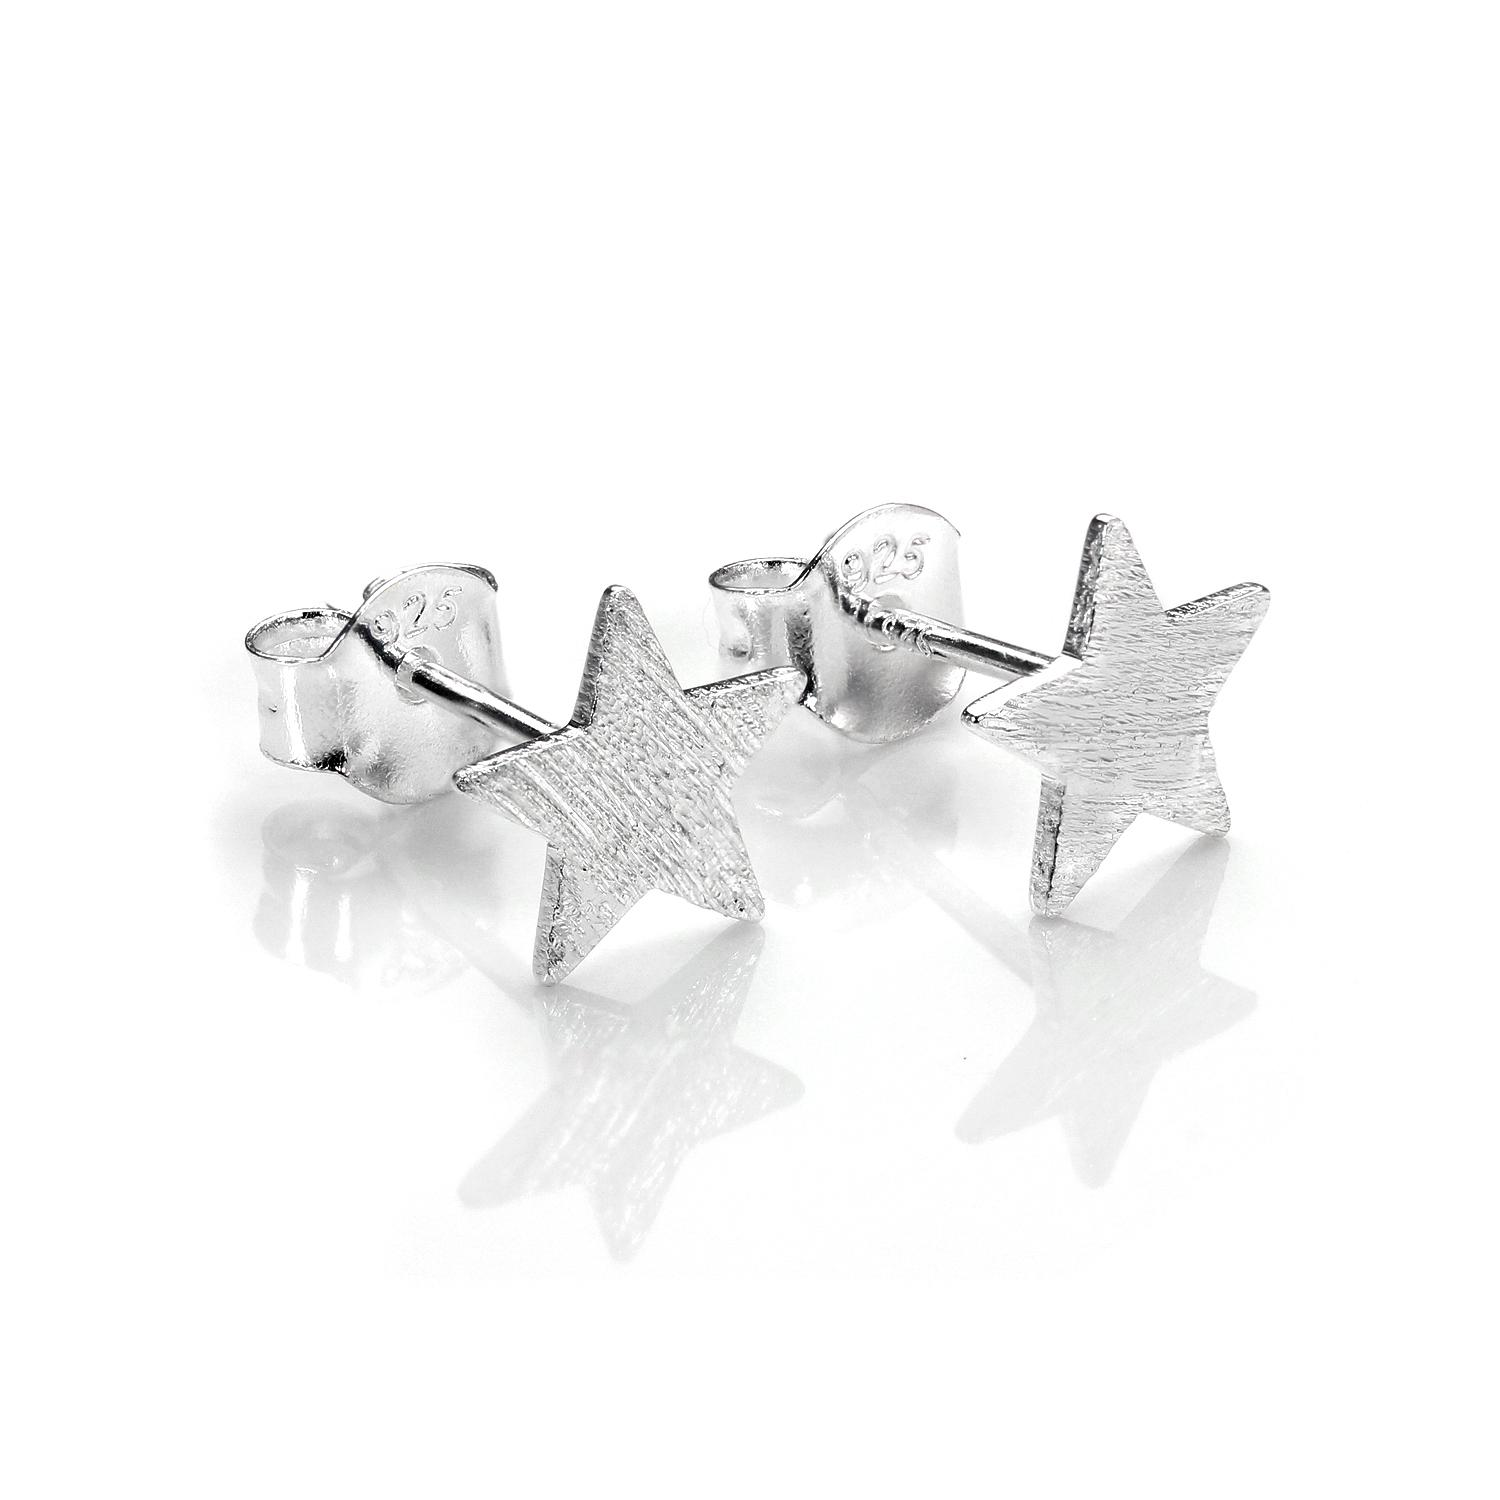 79747edfe Details about Brushed 925 Sterling Silver Flat Star Stud Earrings / Stars /  Xmas Studs